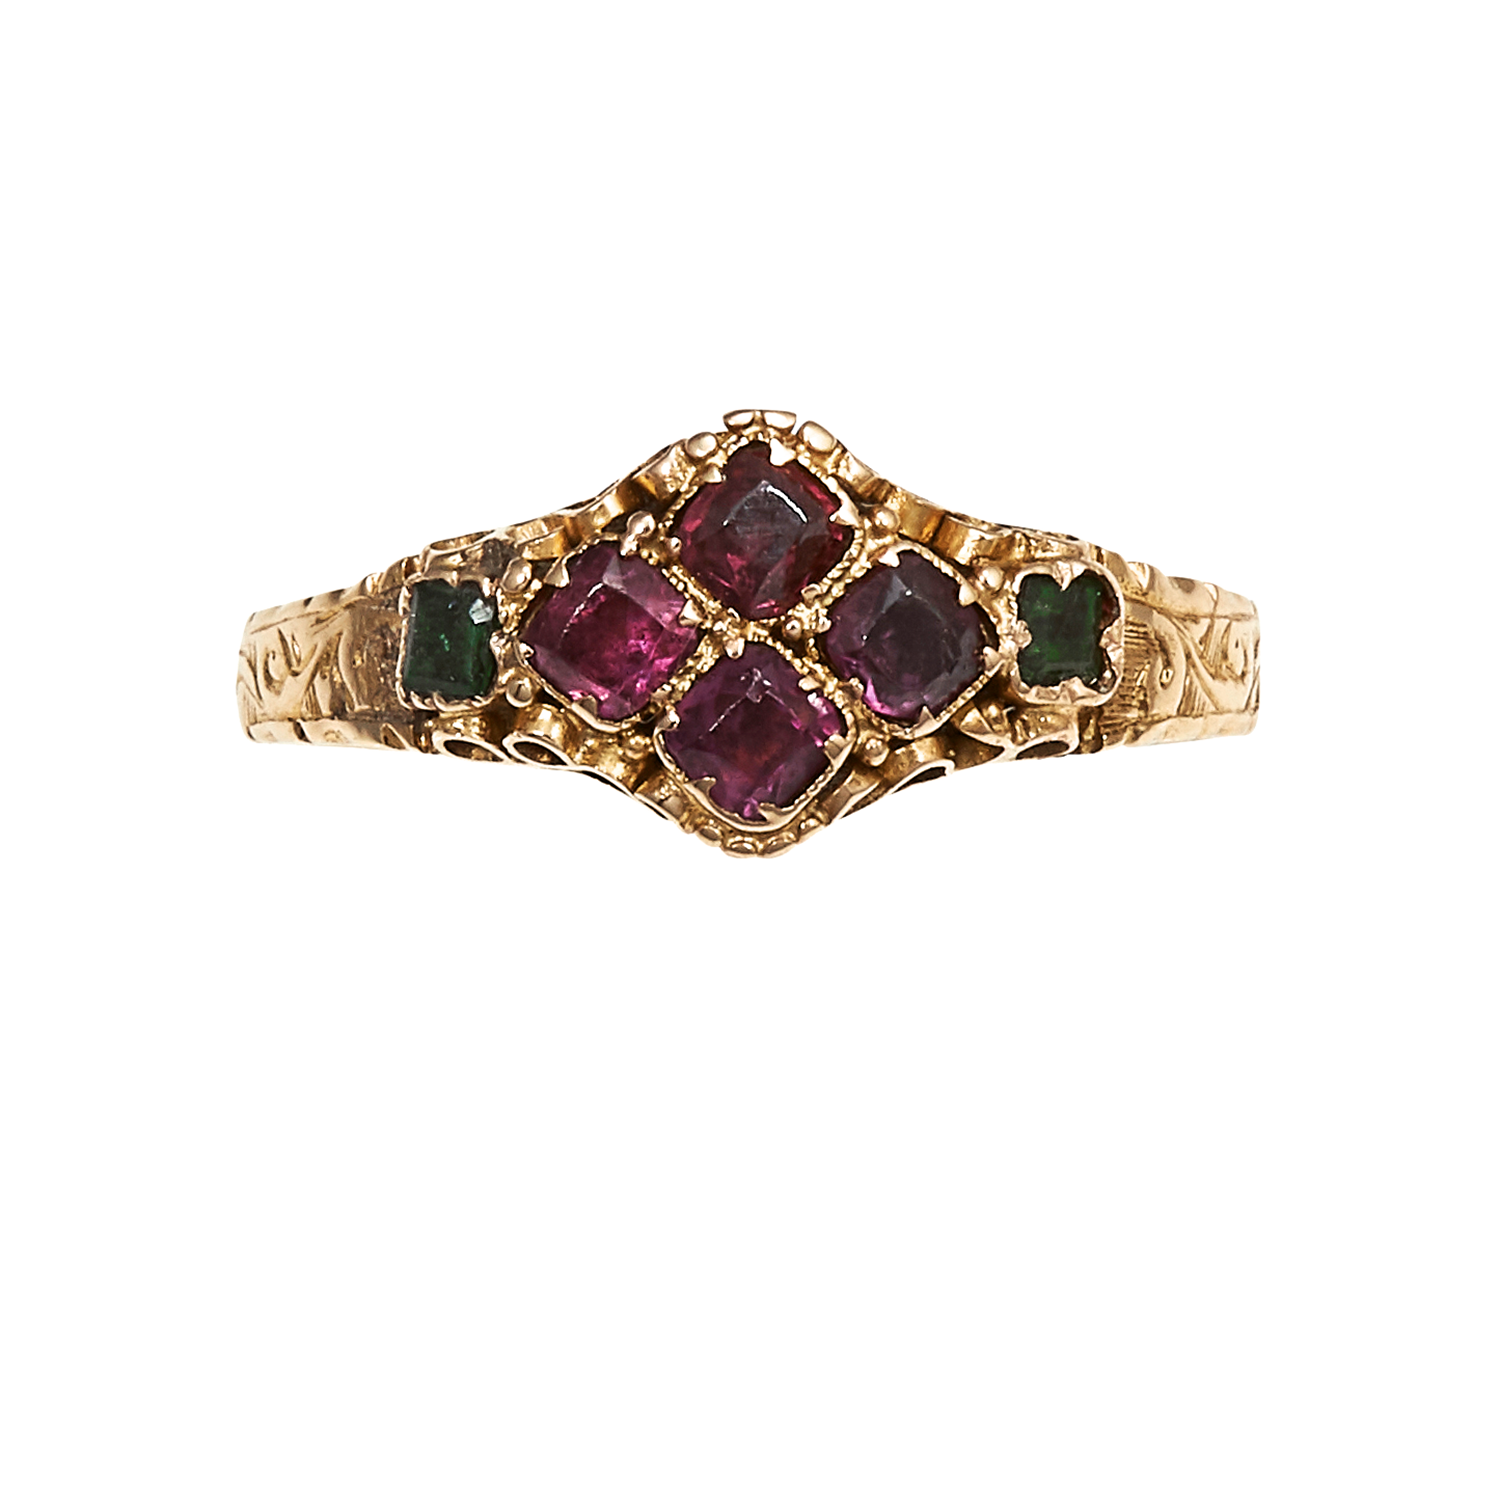 Los 14 - AN ANTIQUE GARNET AND EMERALD RING, CIRCA 1870 in 15 carat yellow gold, set with a quatrefoil